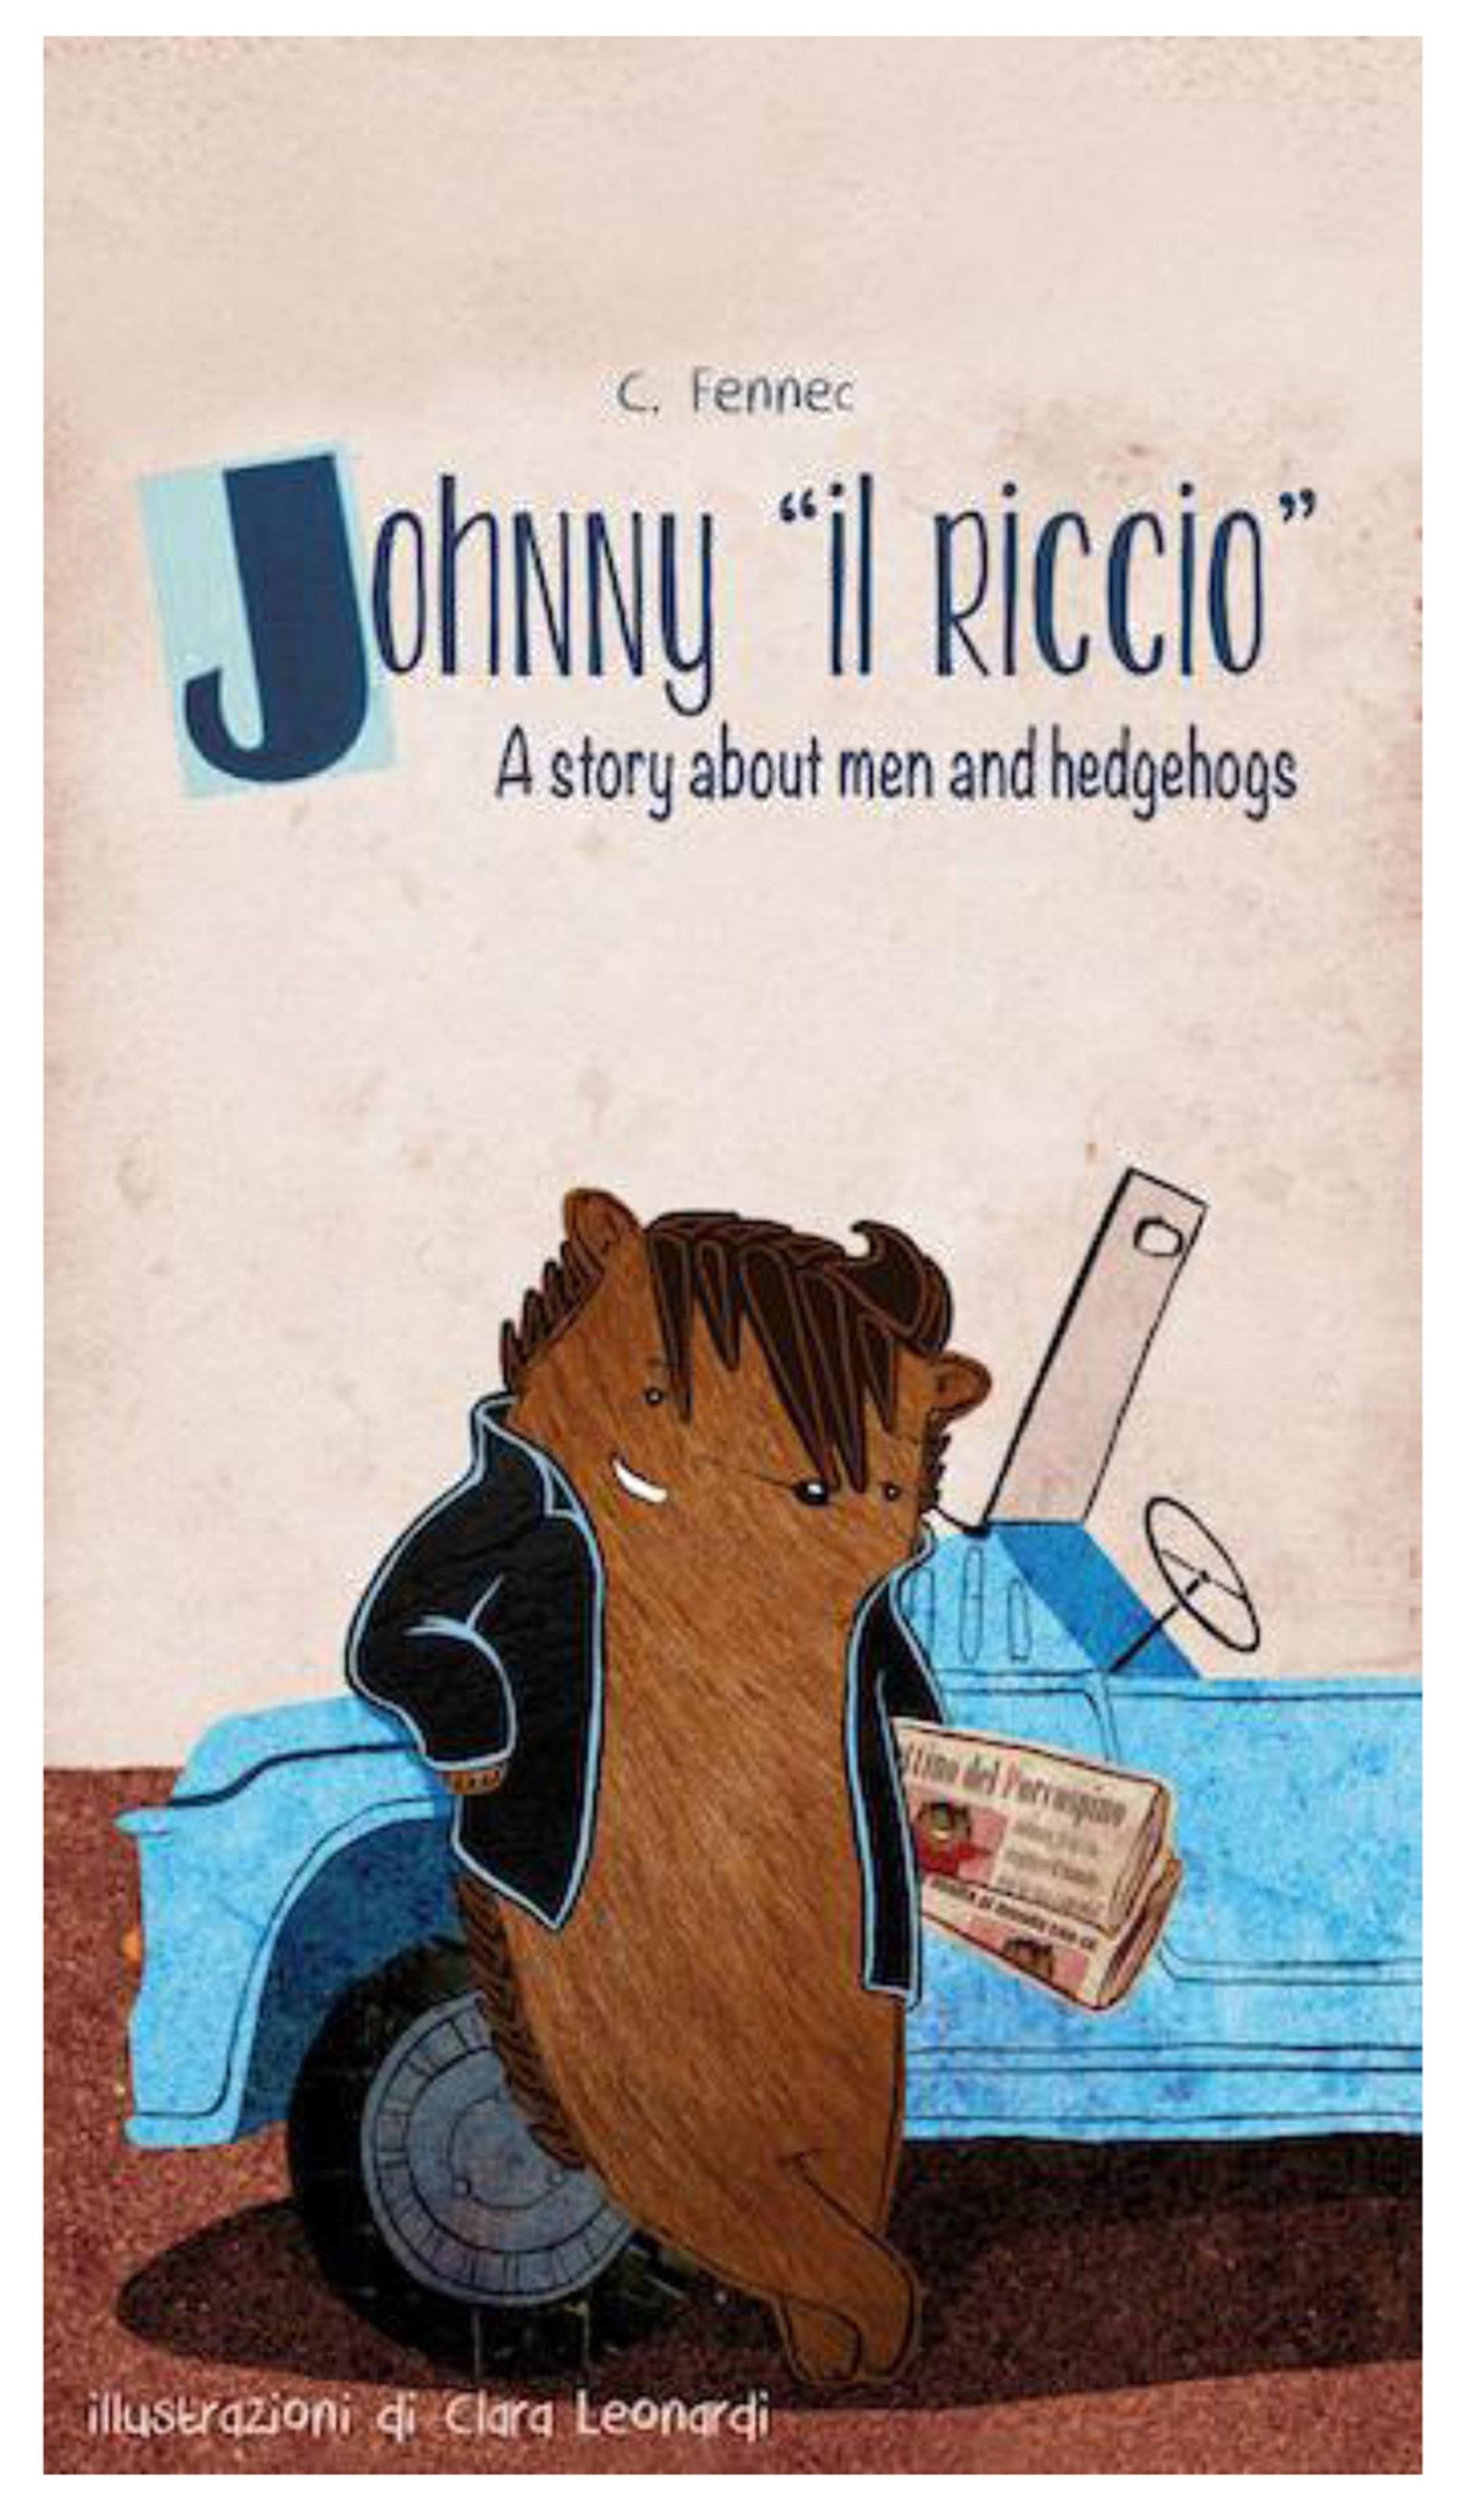 Johnny il riccio, a story about men and hedgehogs